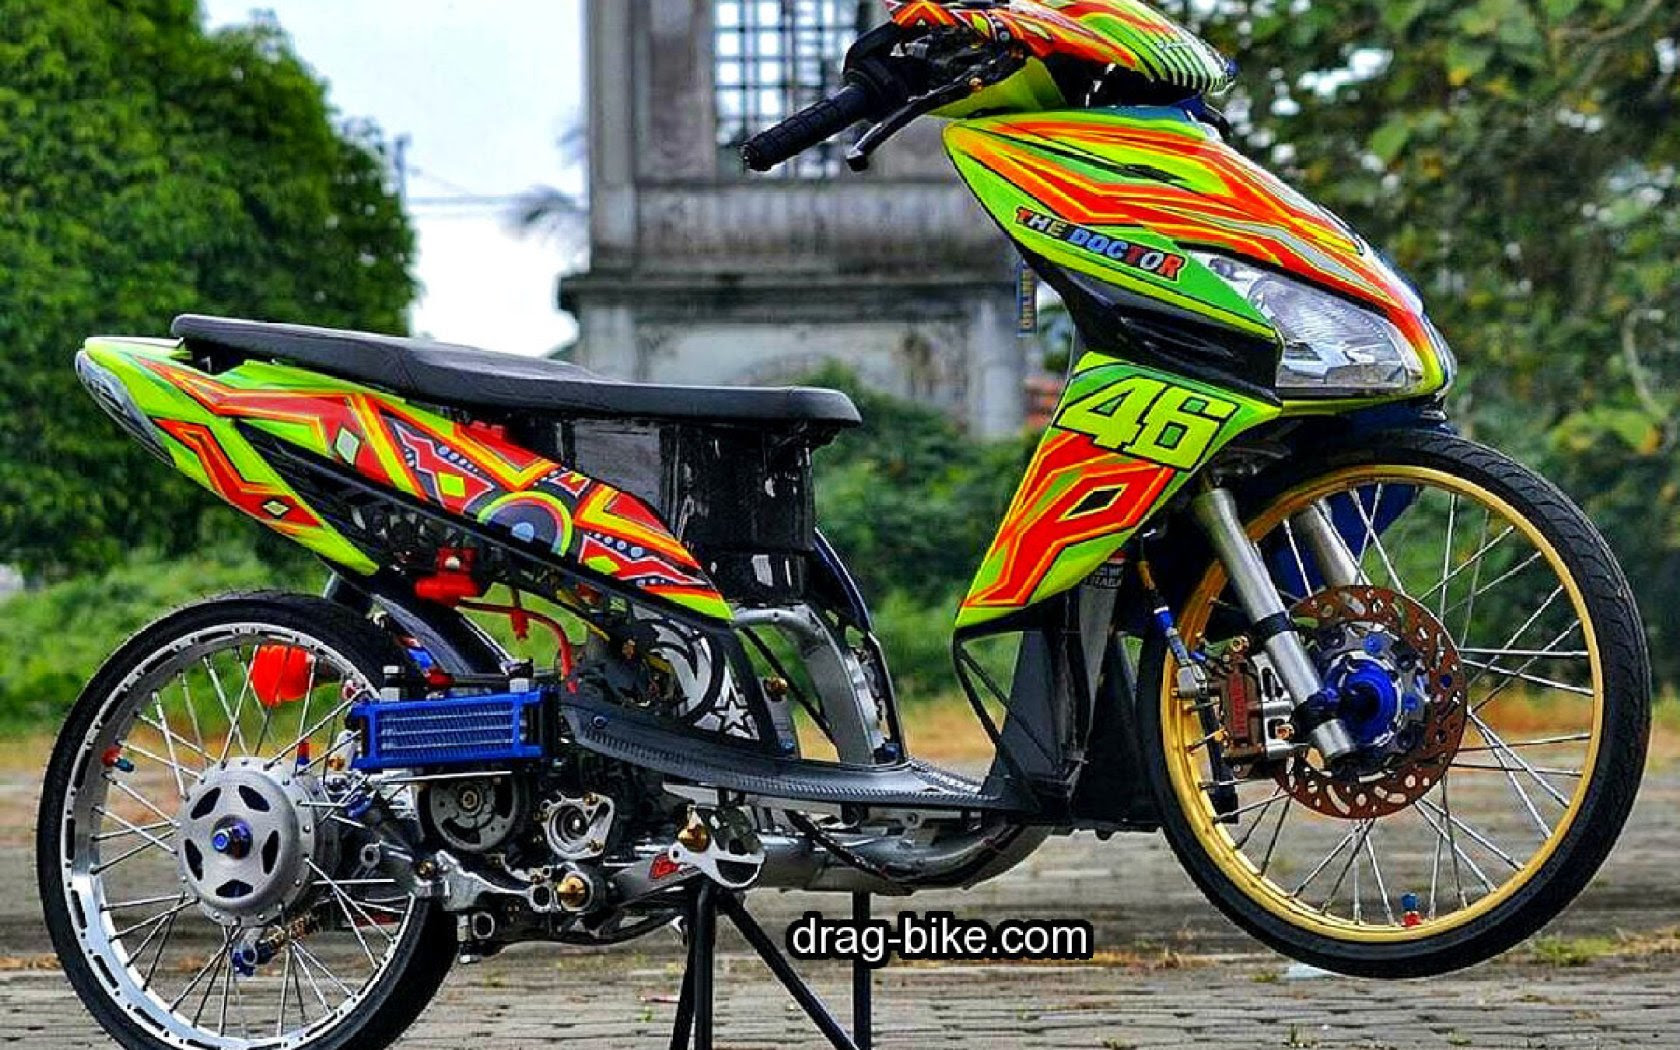 Gambar Modifikasi Motor Vario 150cc Terupdate Earth Modification